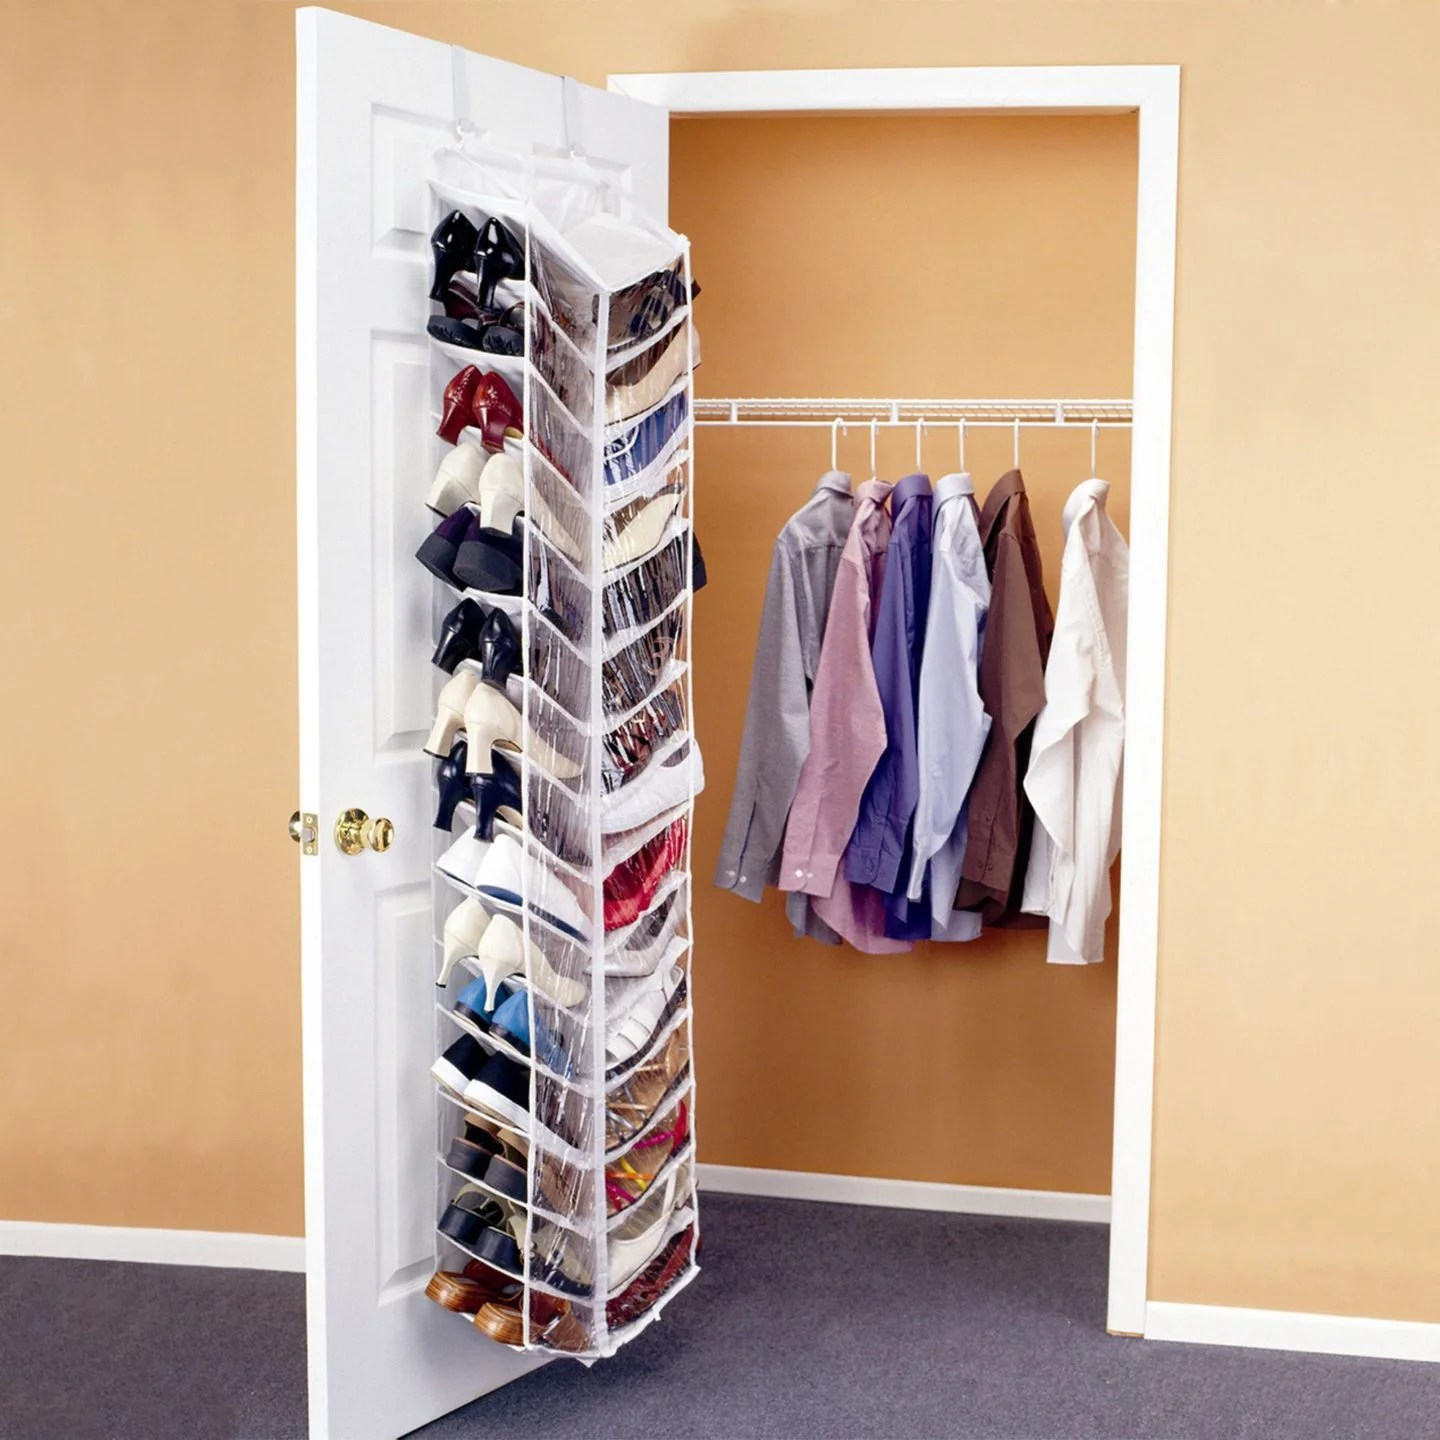 4 types of shoe storage solutions for